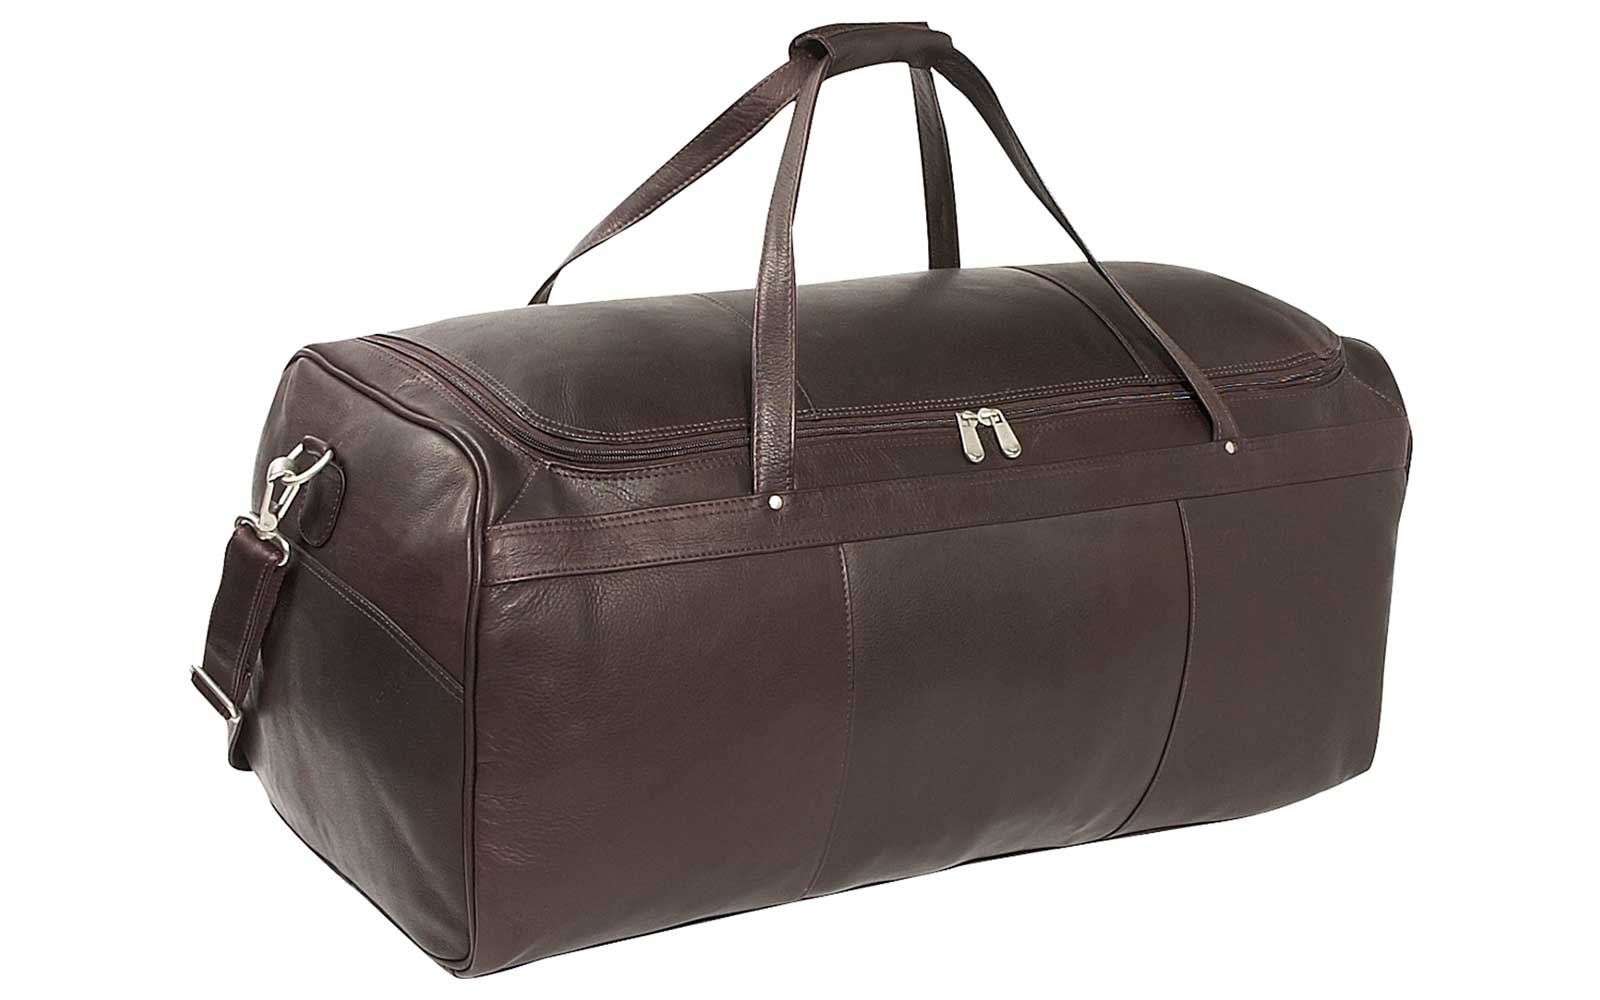 Piel Duffel Bag for Travel